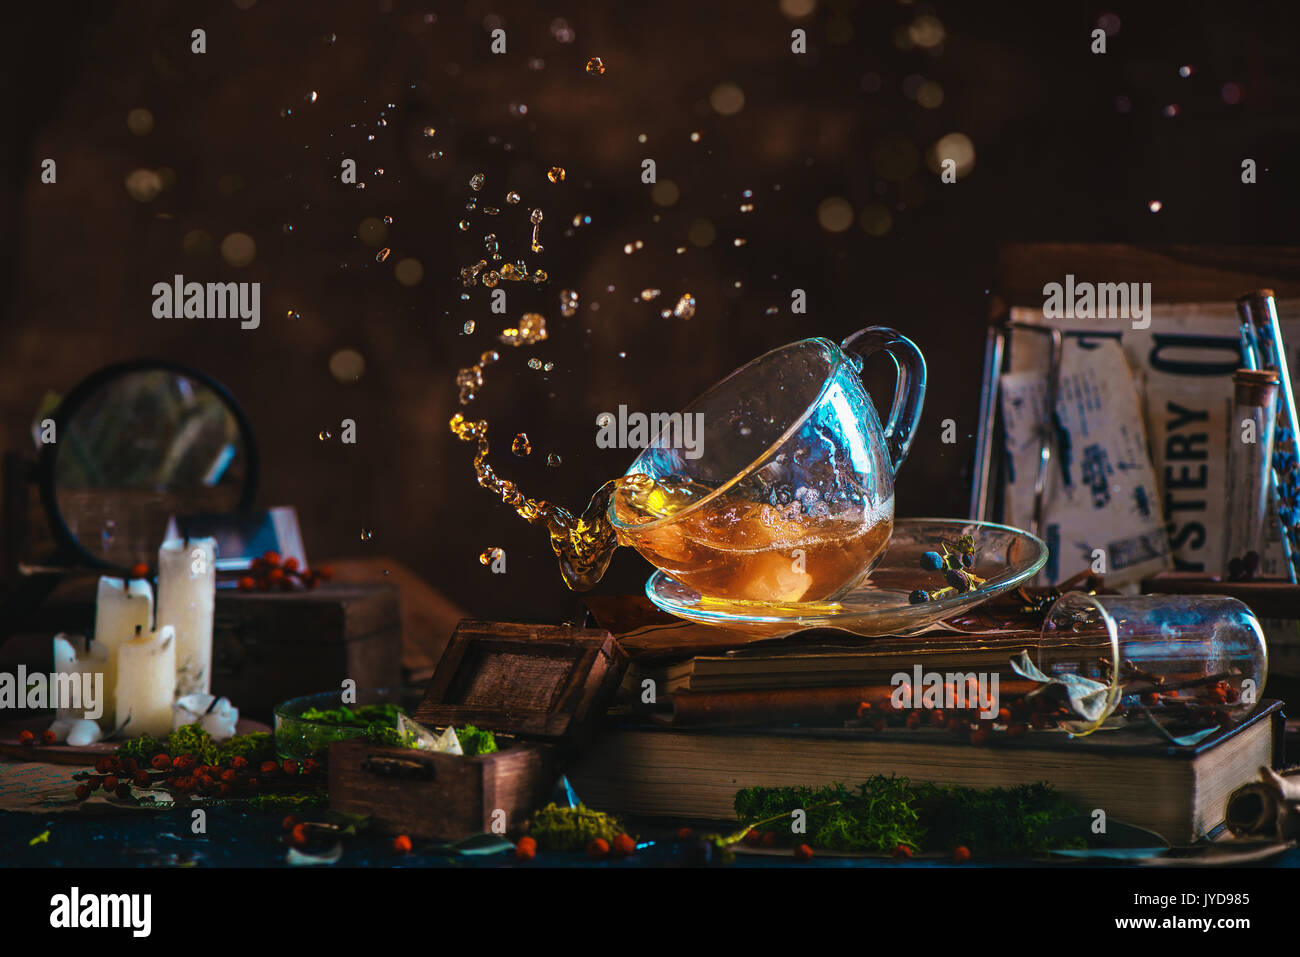 Tea splash in a glass cup on a wooden background with candles, mystery newspaper clips, books, leaves and moss. Action still life with tea drops bokeh - Stock Image